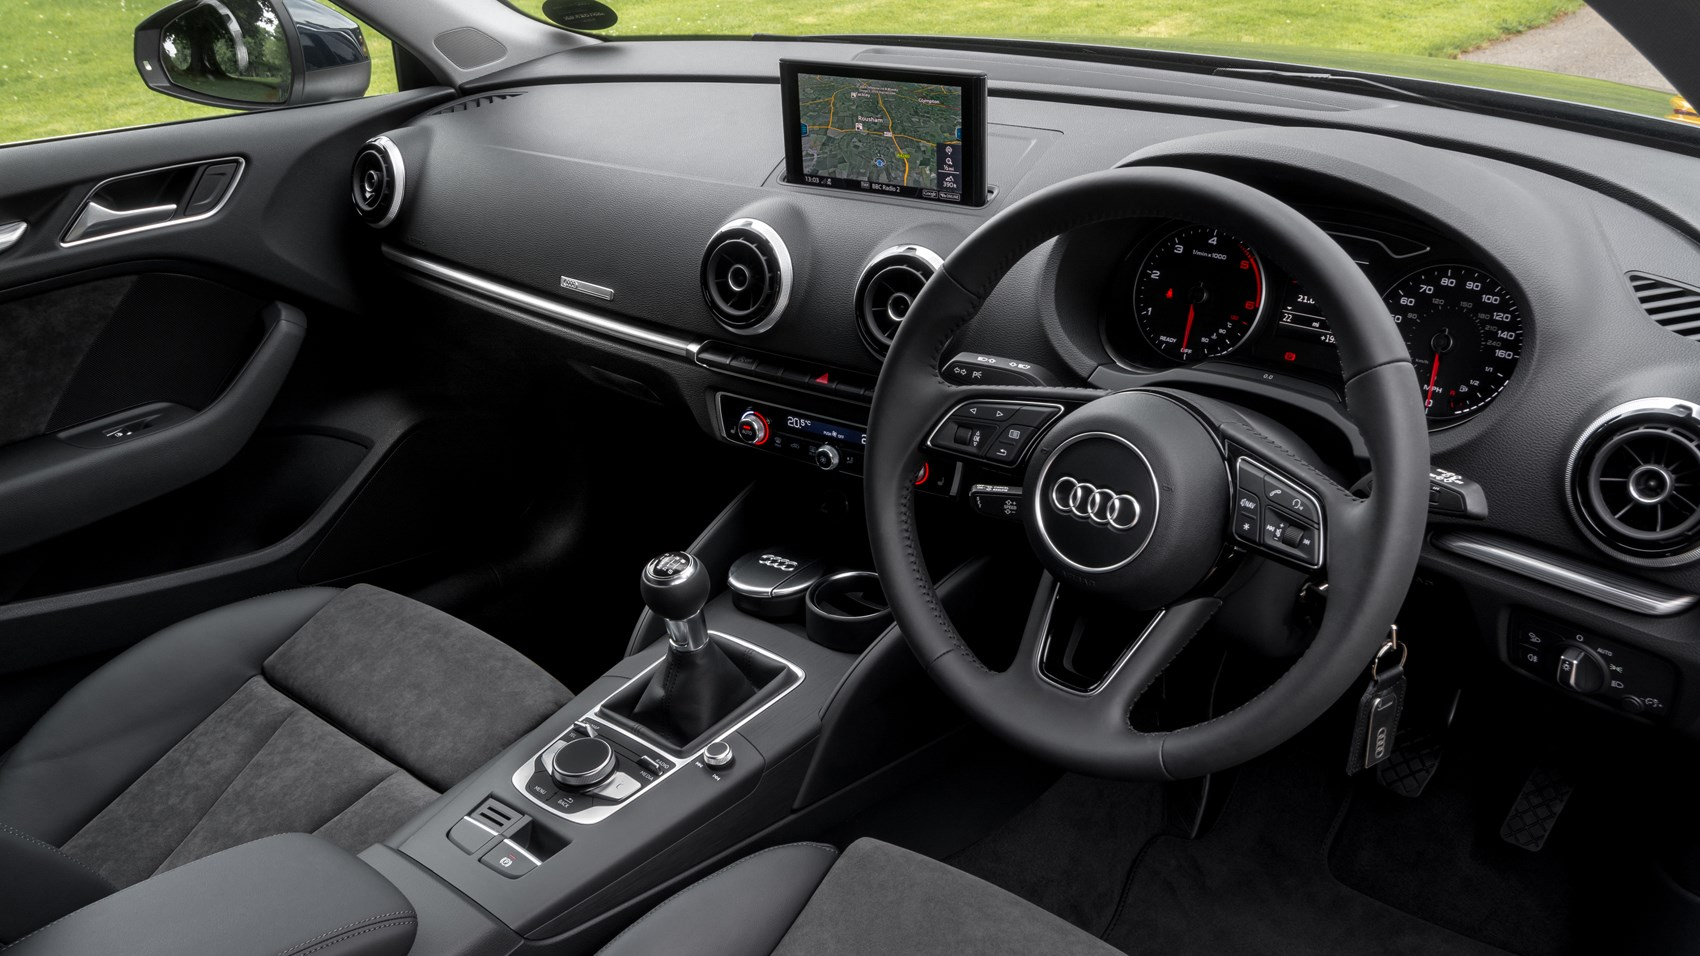 Audi A3 (2016) 1.4 TFSI S Line review by CAR Magazine